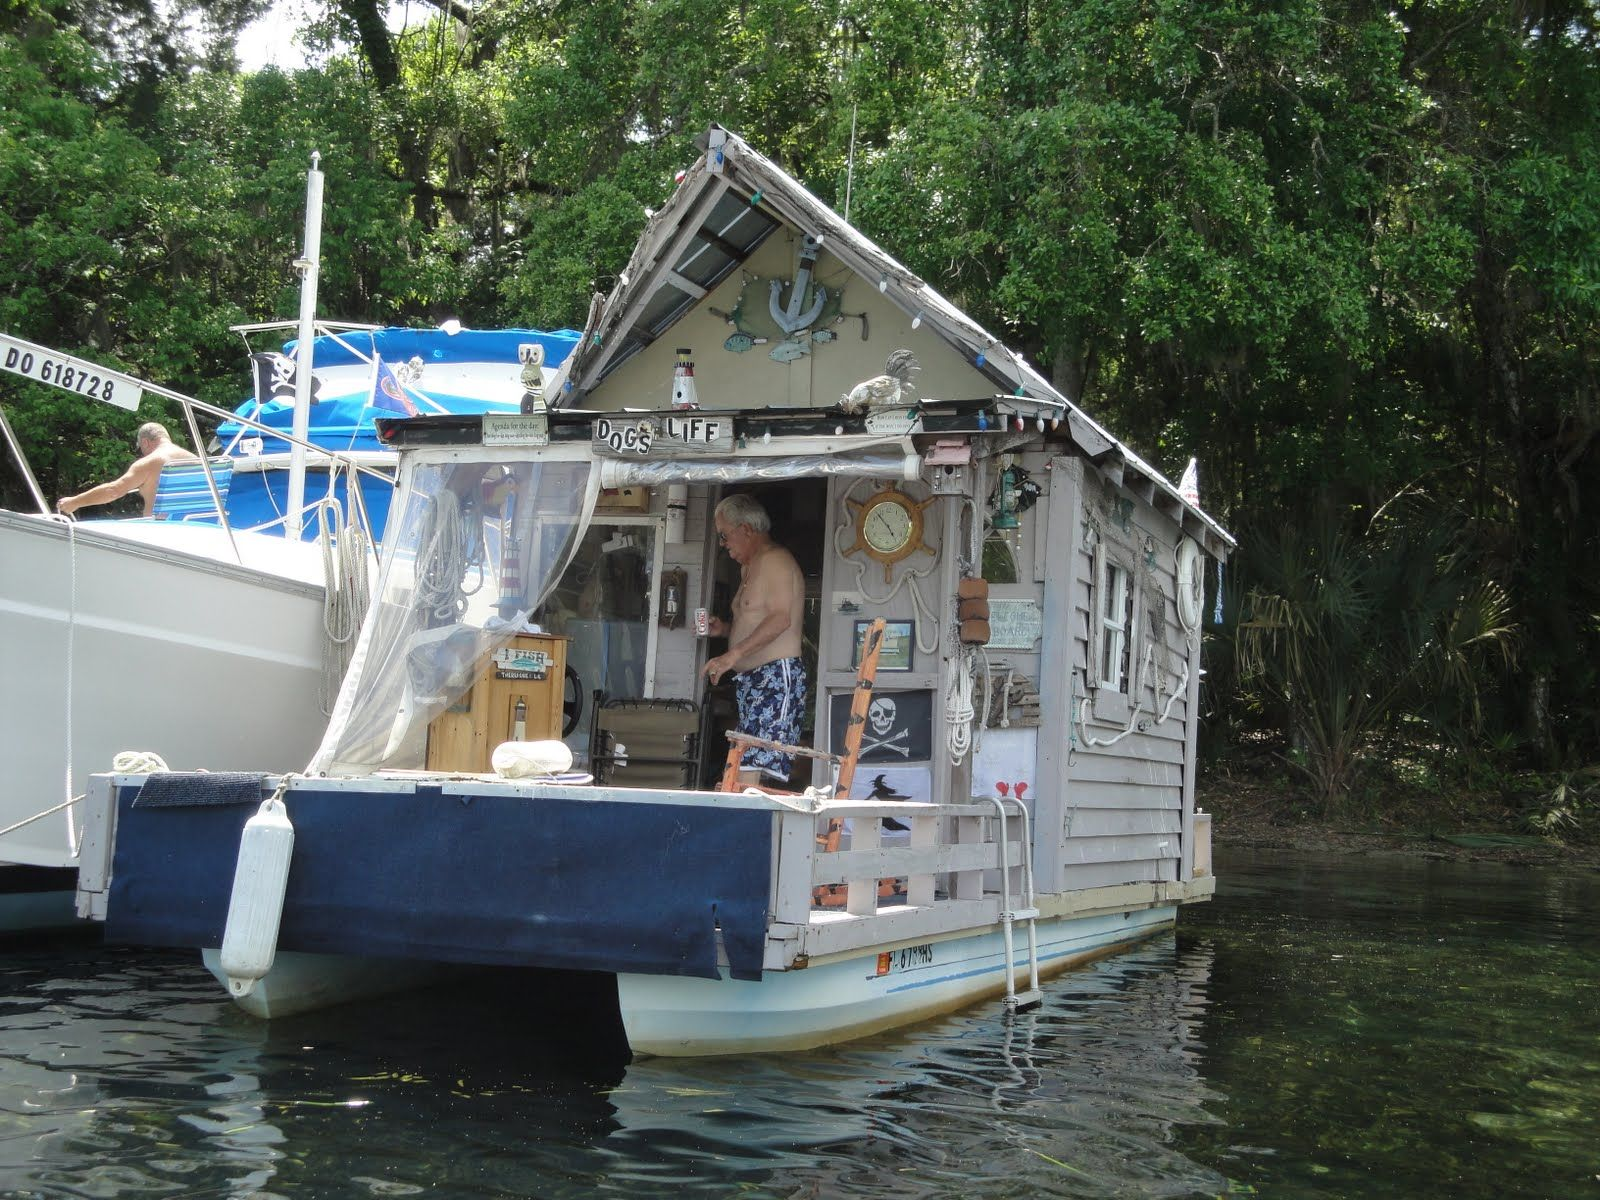 144 best river images on Pinterest Houseboats Boat house and